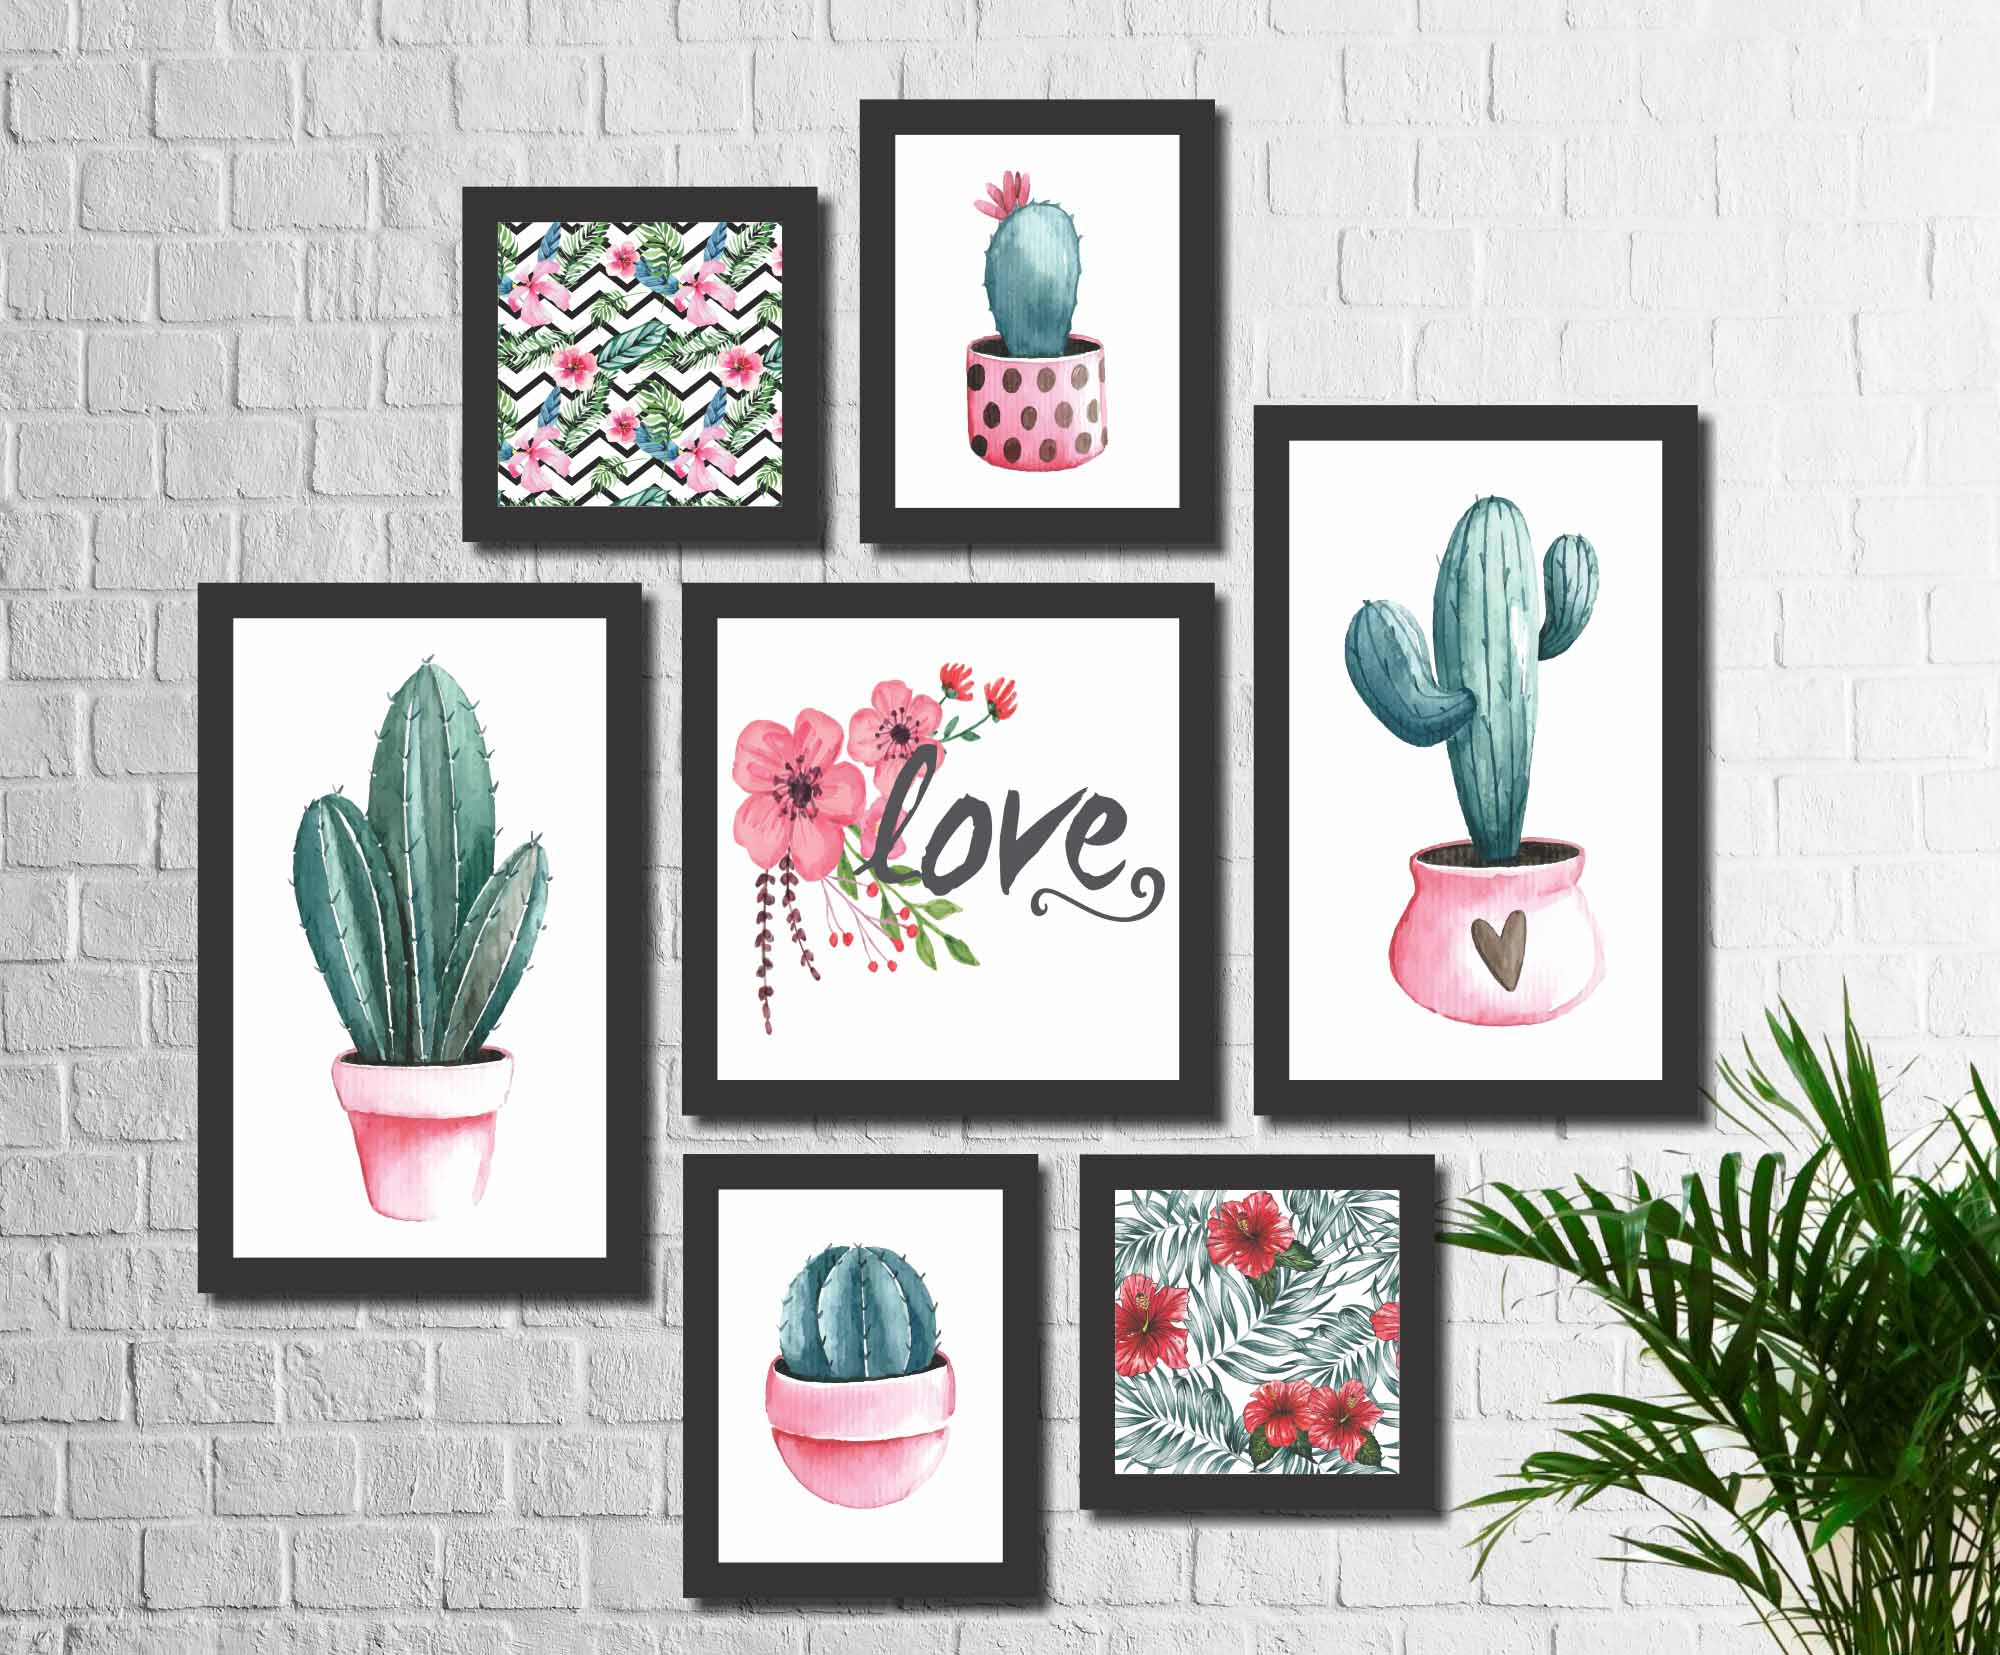 Kit 7 Quadros Decorativos Flor De Cactos No Vaso Love